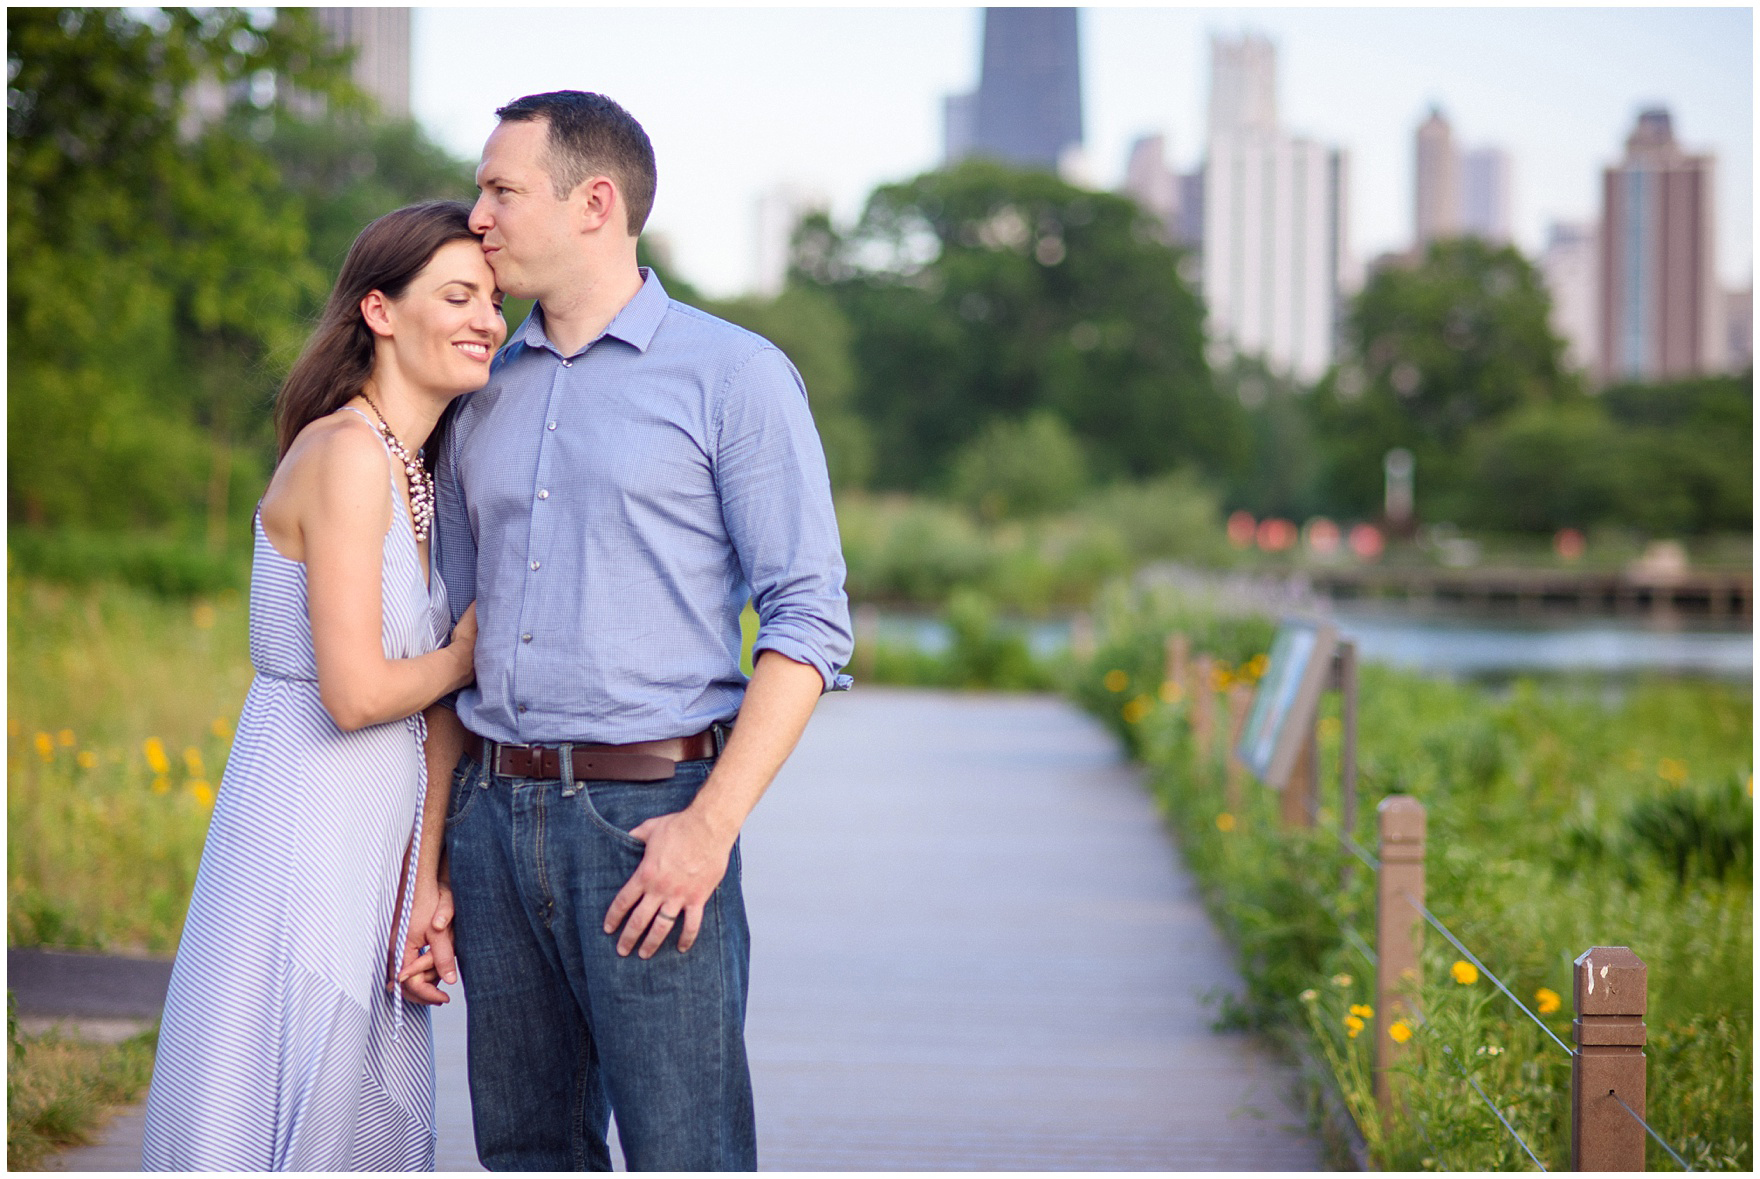 Dad kisses mom during a Chicago Lincoln Park family photography session.